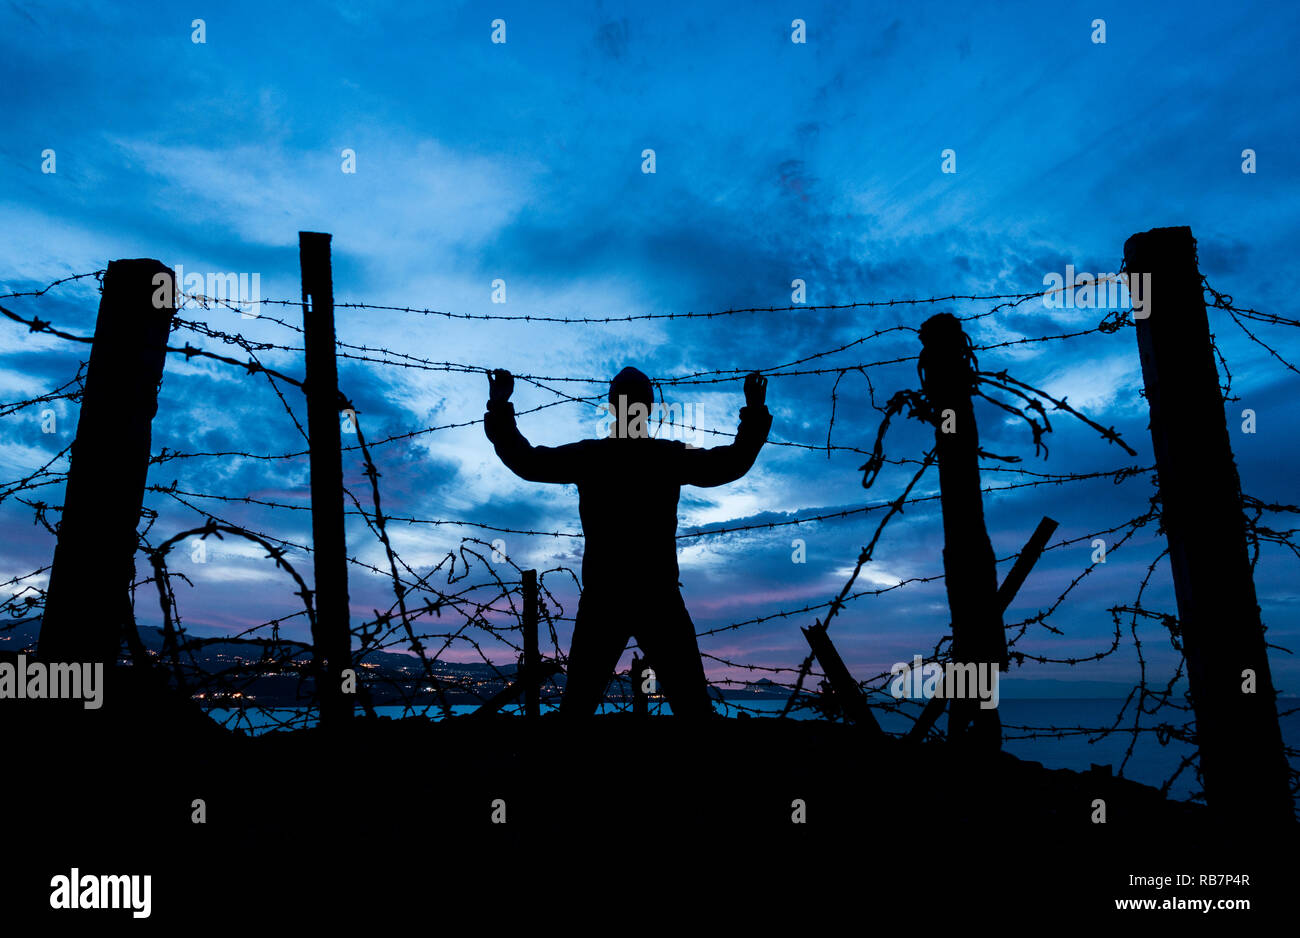 silhouette of man looking through barbed wire/ razor wire fence at night. Brexit, immigration, asylum... concept - Stock Image